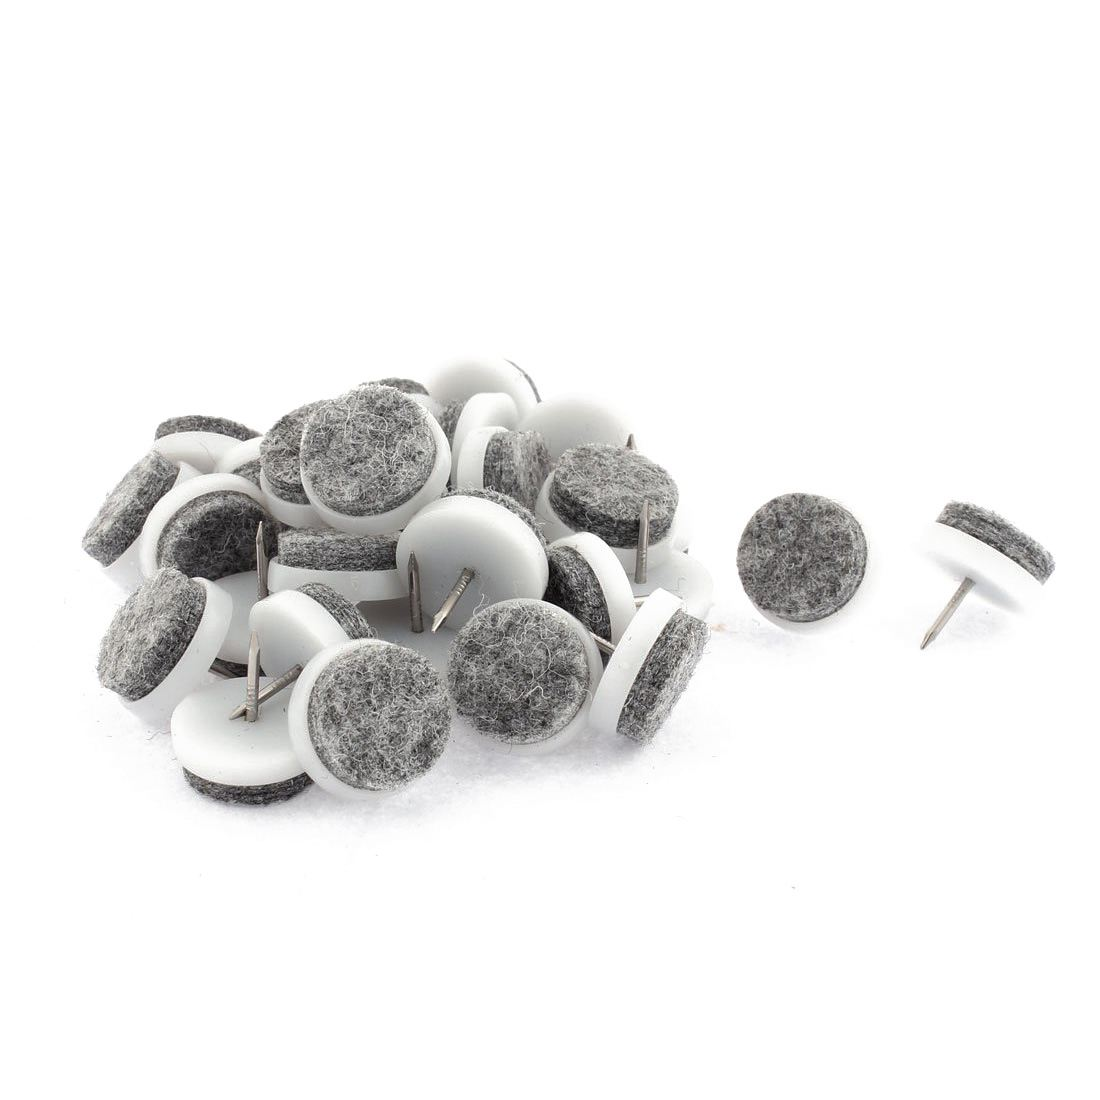 Hot Sale Furniture Chair Sofa Feet Round Pads Nail Protectors 22mm Dia 30PCS